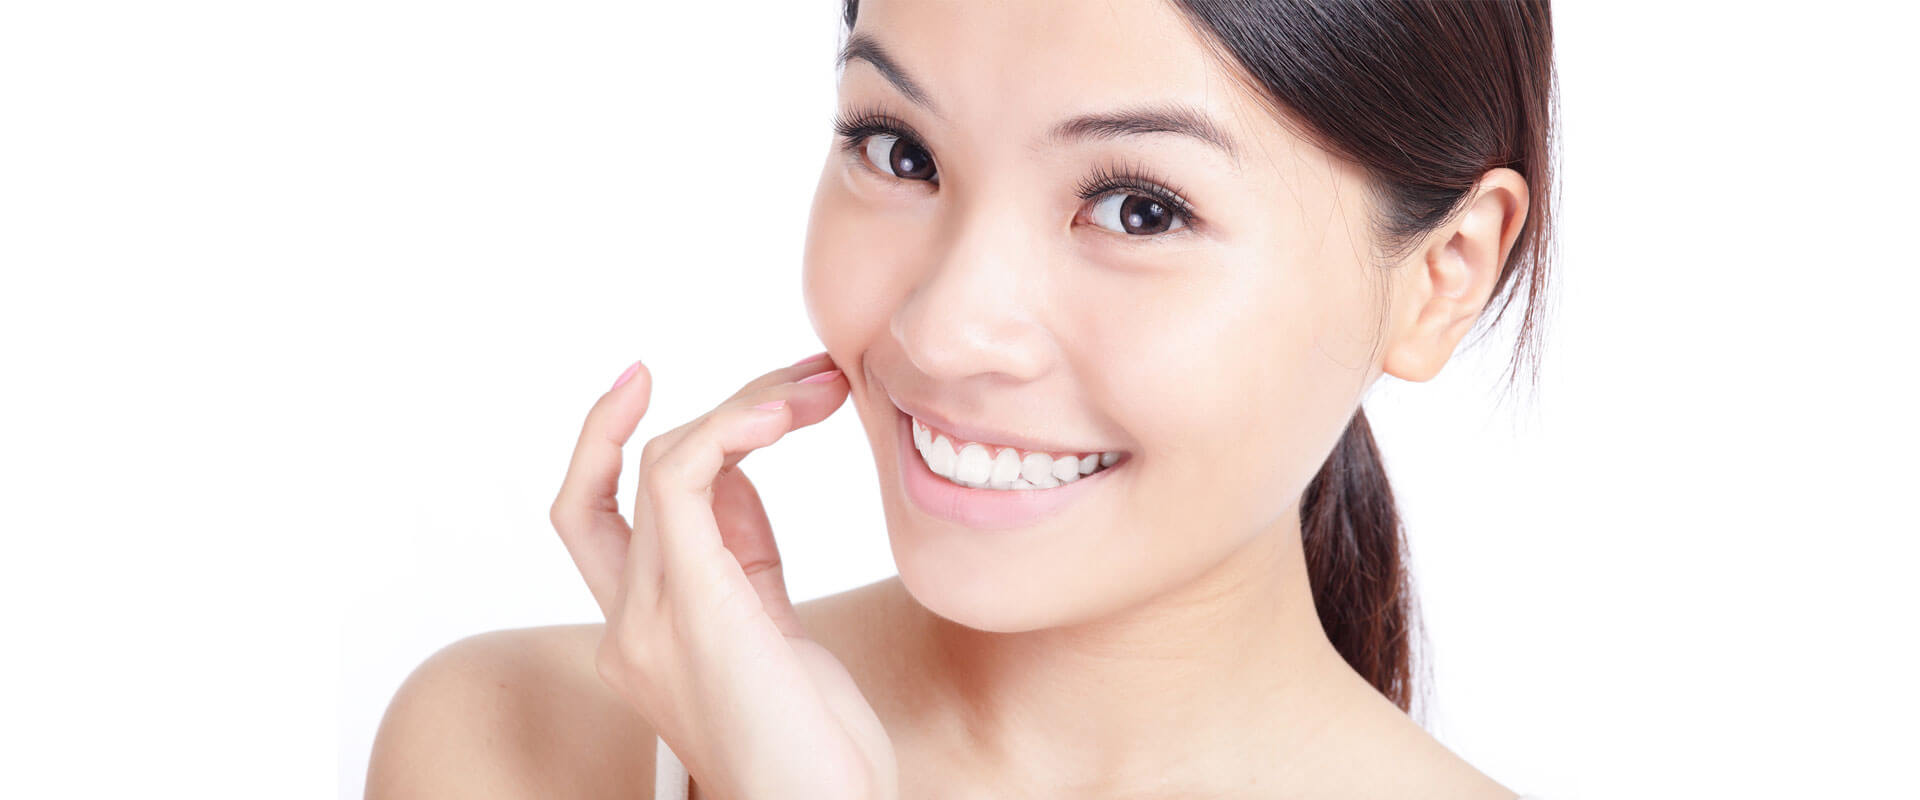 Beautiful young woman smiling at the camera showing bright white teeth